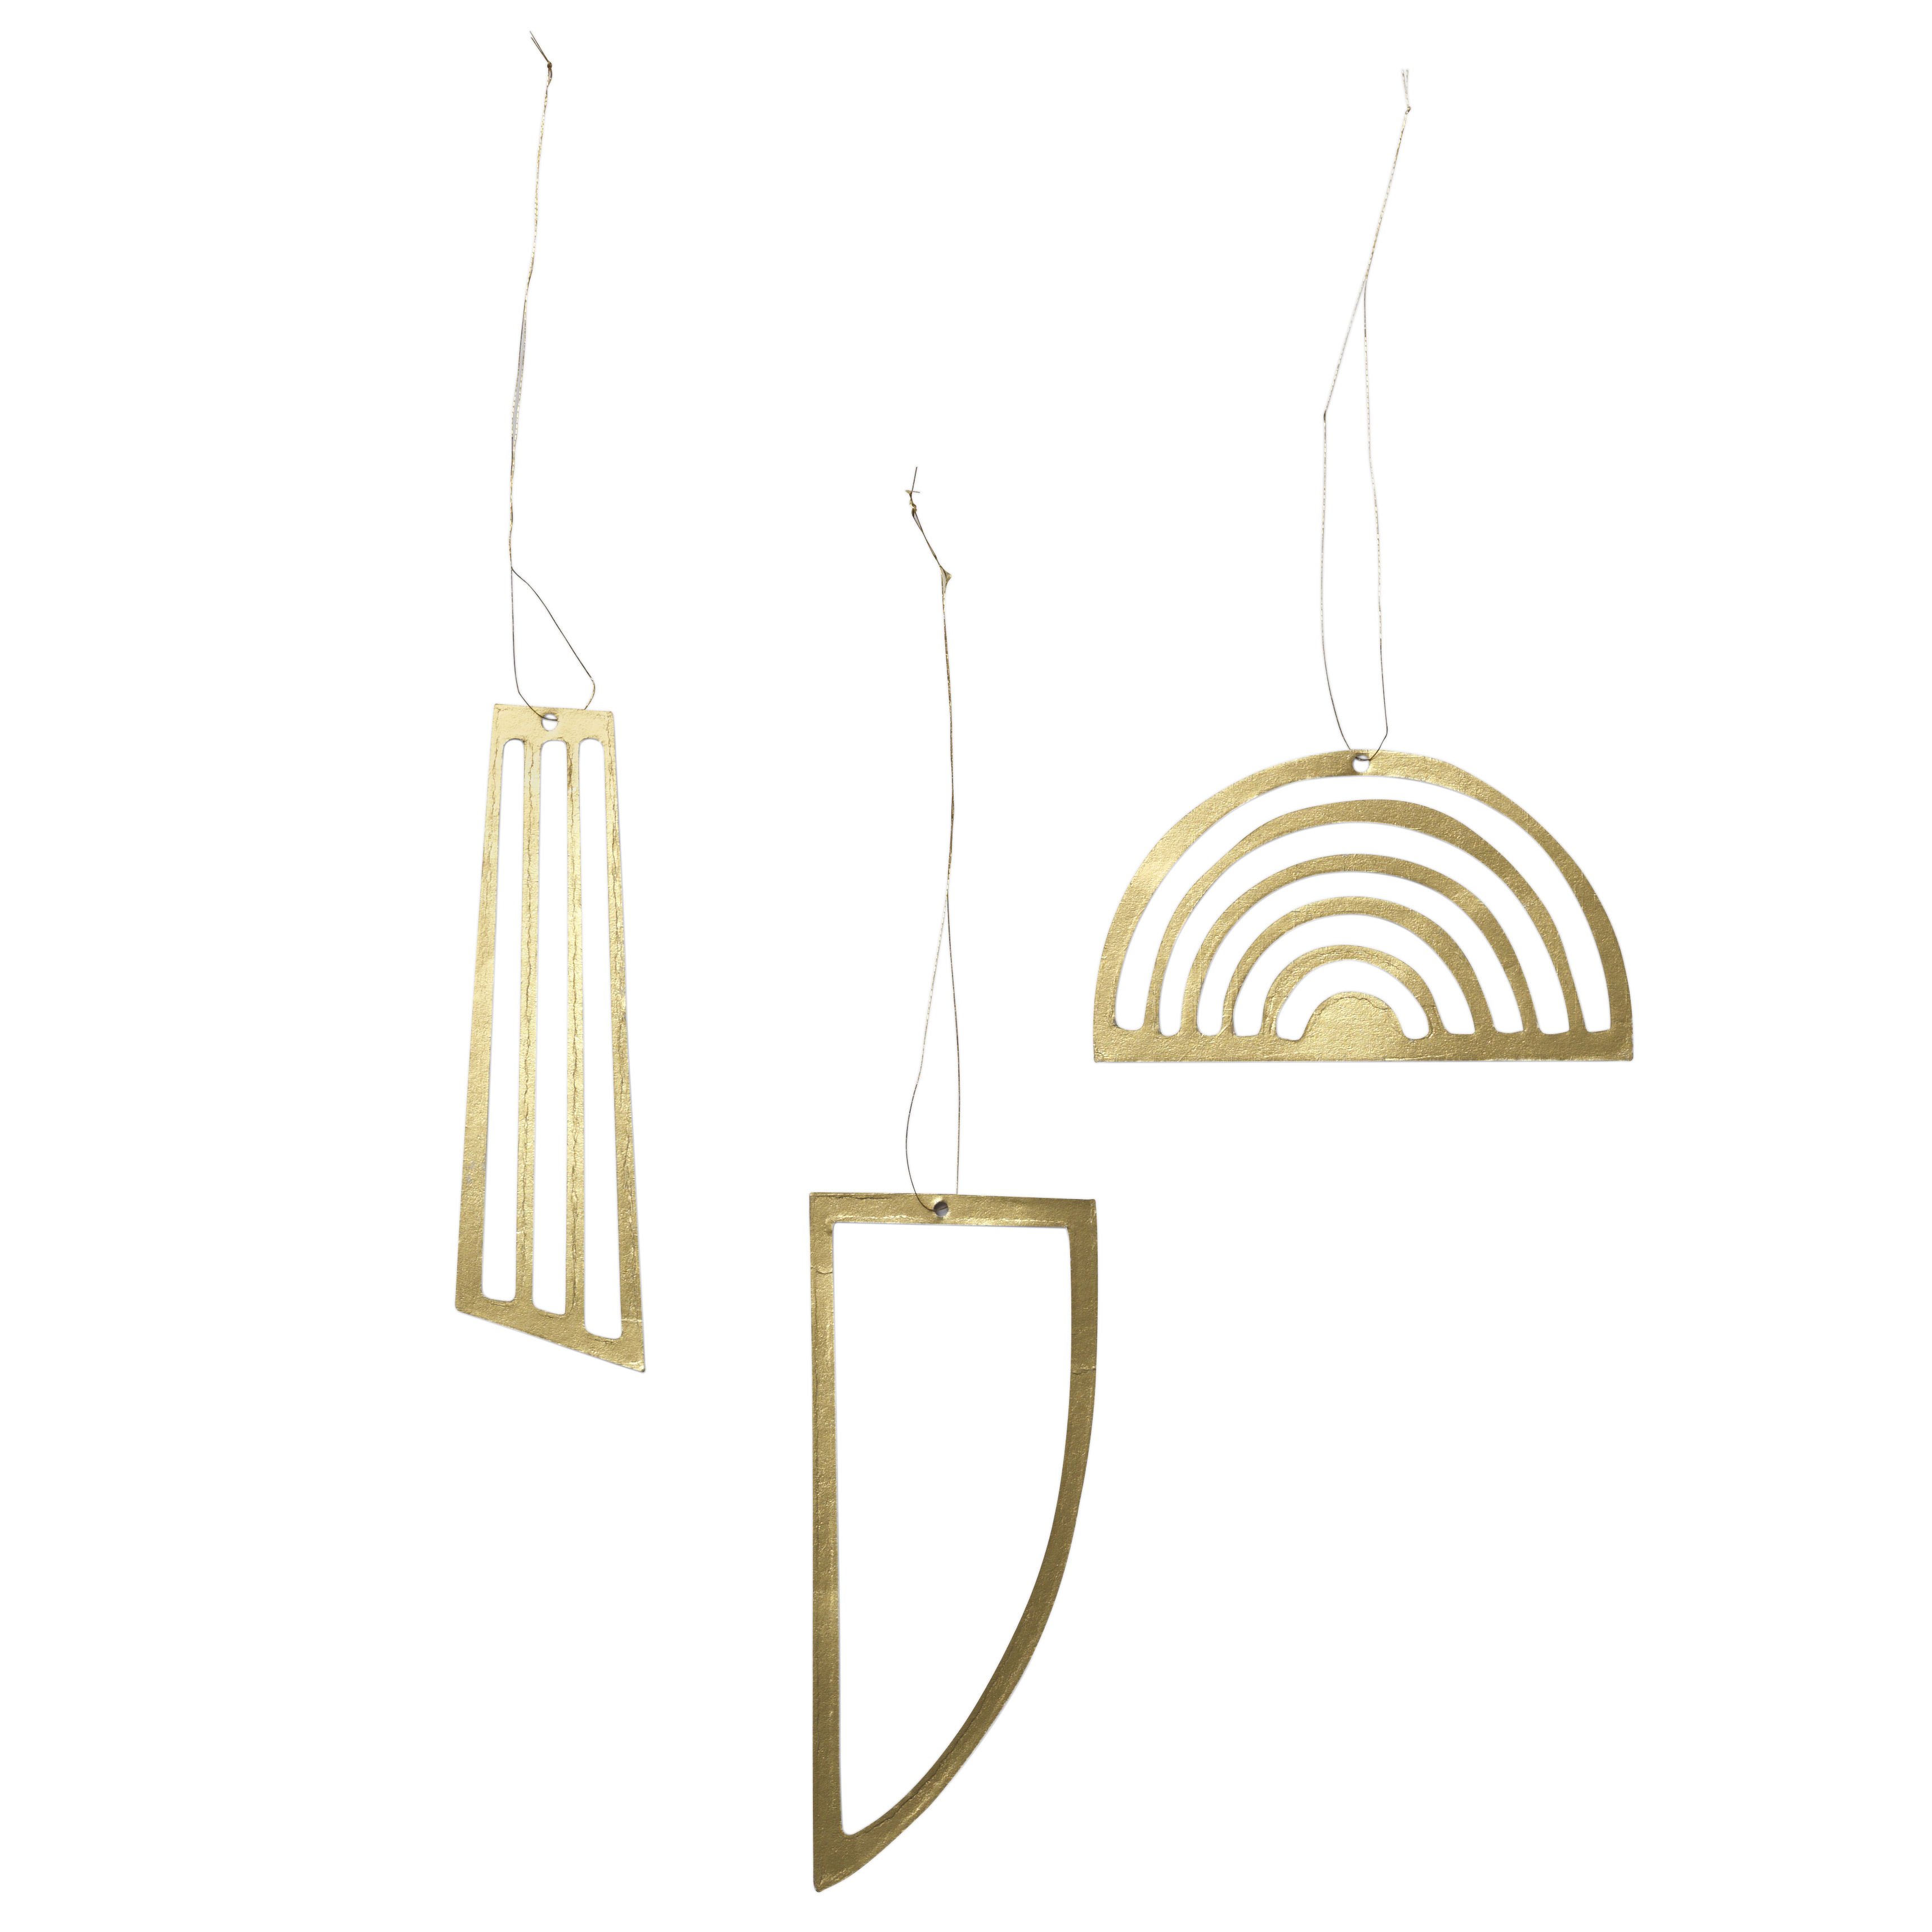 Decoration - Home Accessories - Golden Christmas decoration - / Cardboard - Set of 3 by Ferm Living - Gold - Cardboard